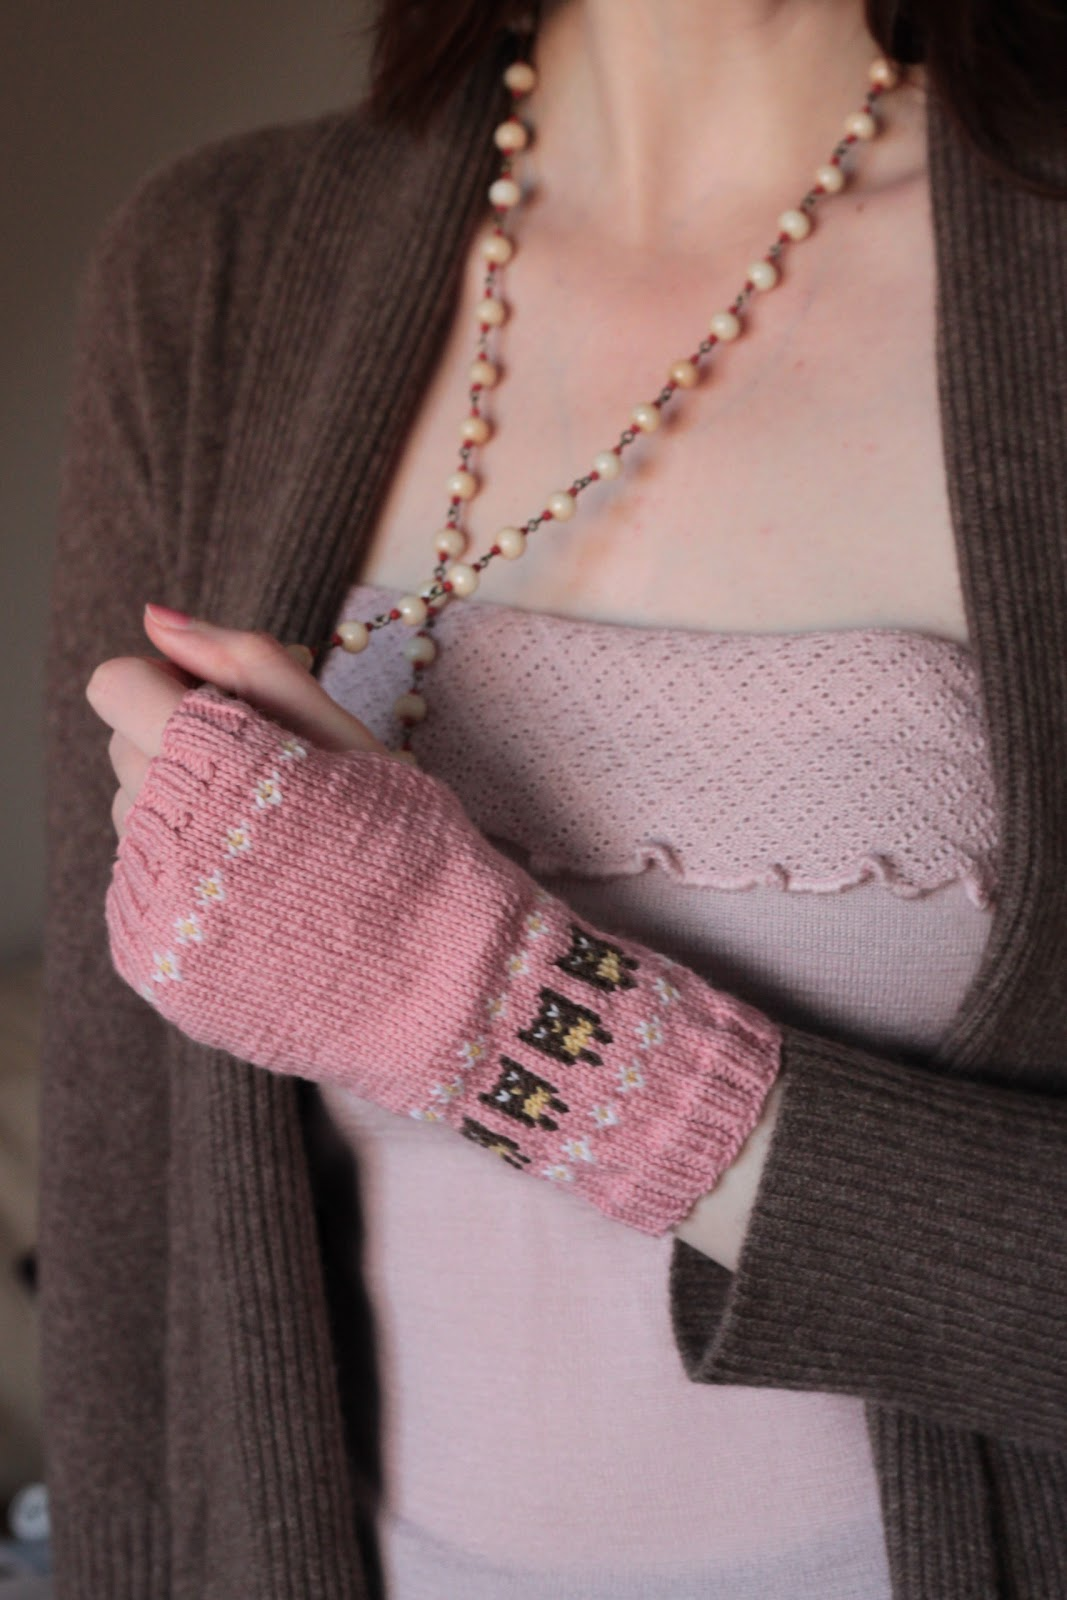 Wrist Warmers Knitting Pattern : KnittingPony: Owl Wrist Warmers (Free Knitting Pattern)